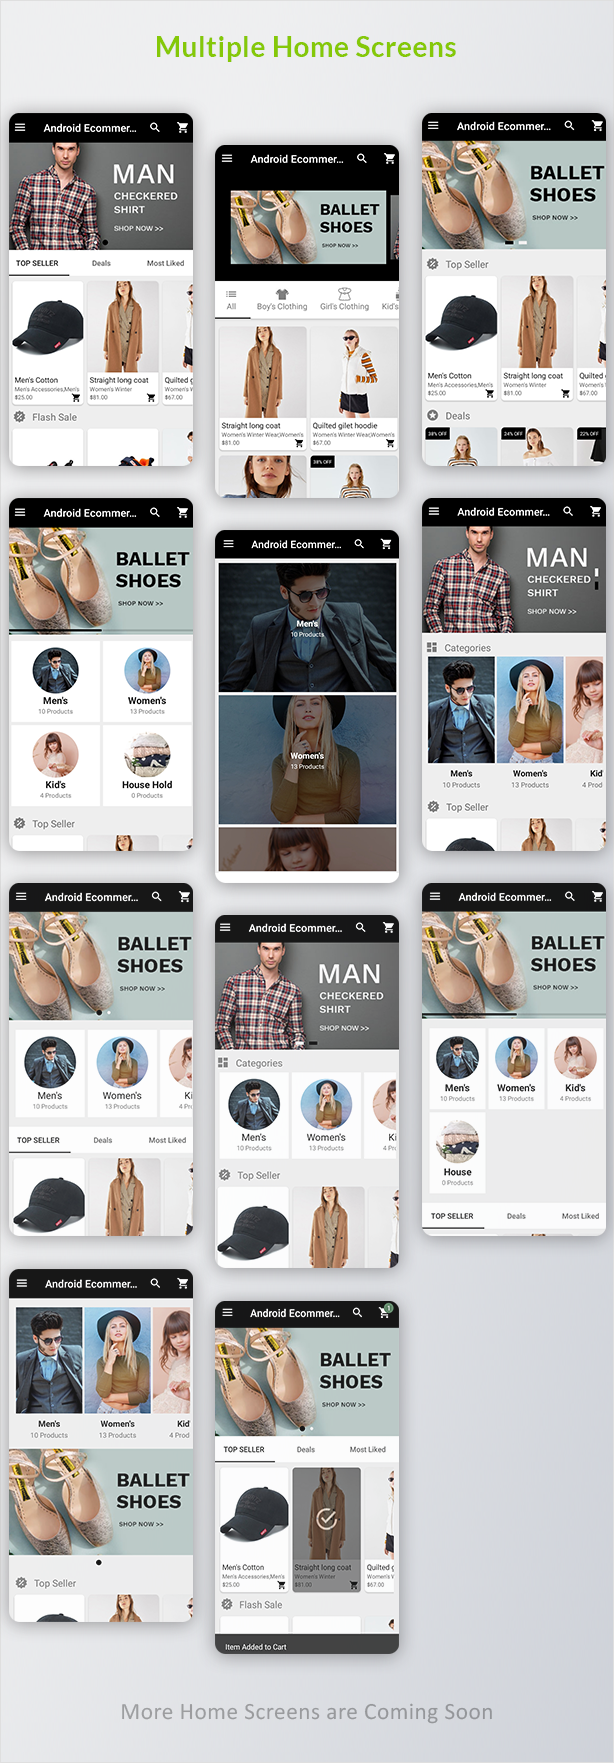 Android Ecommerce - Universal Android Ecommerce / Store Full Mobile App with Laravel CMS - 9